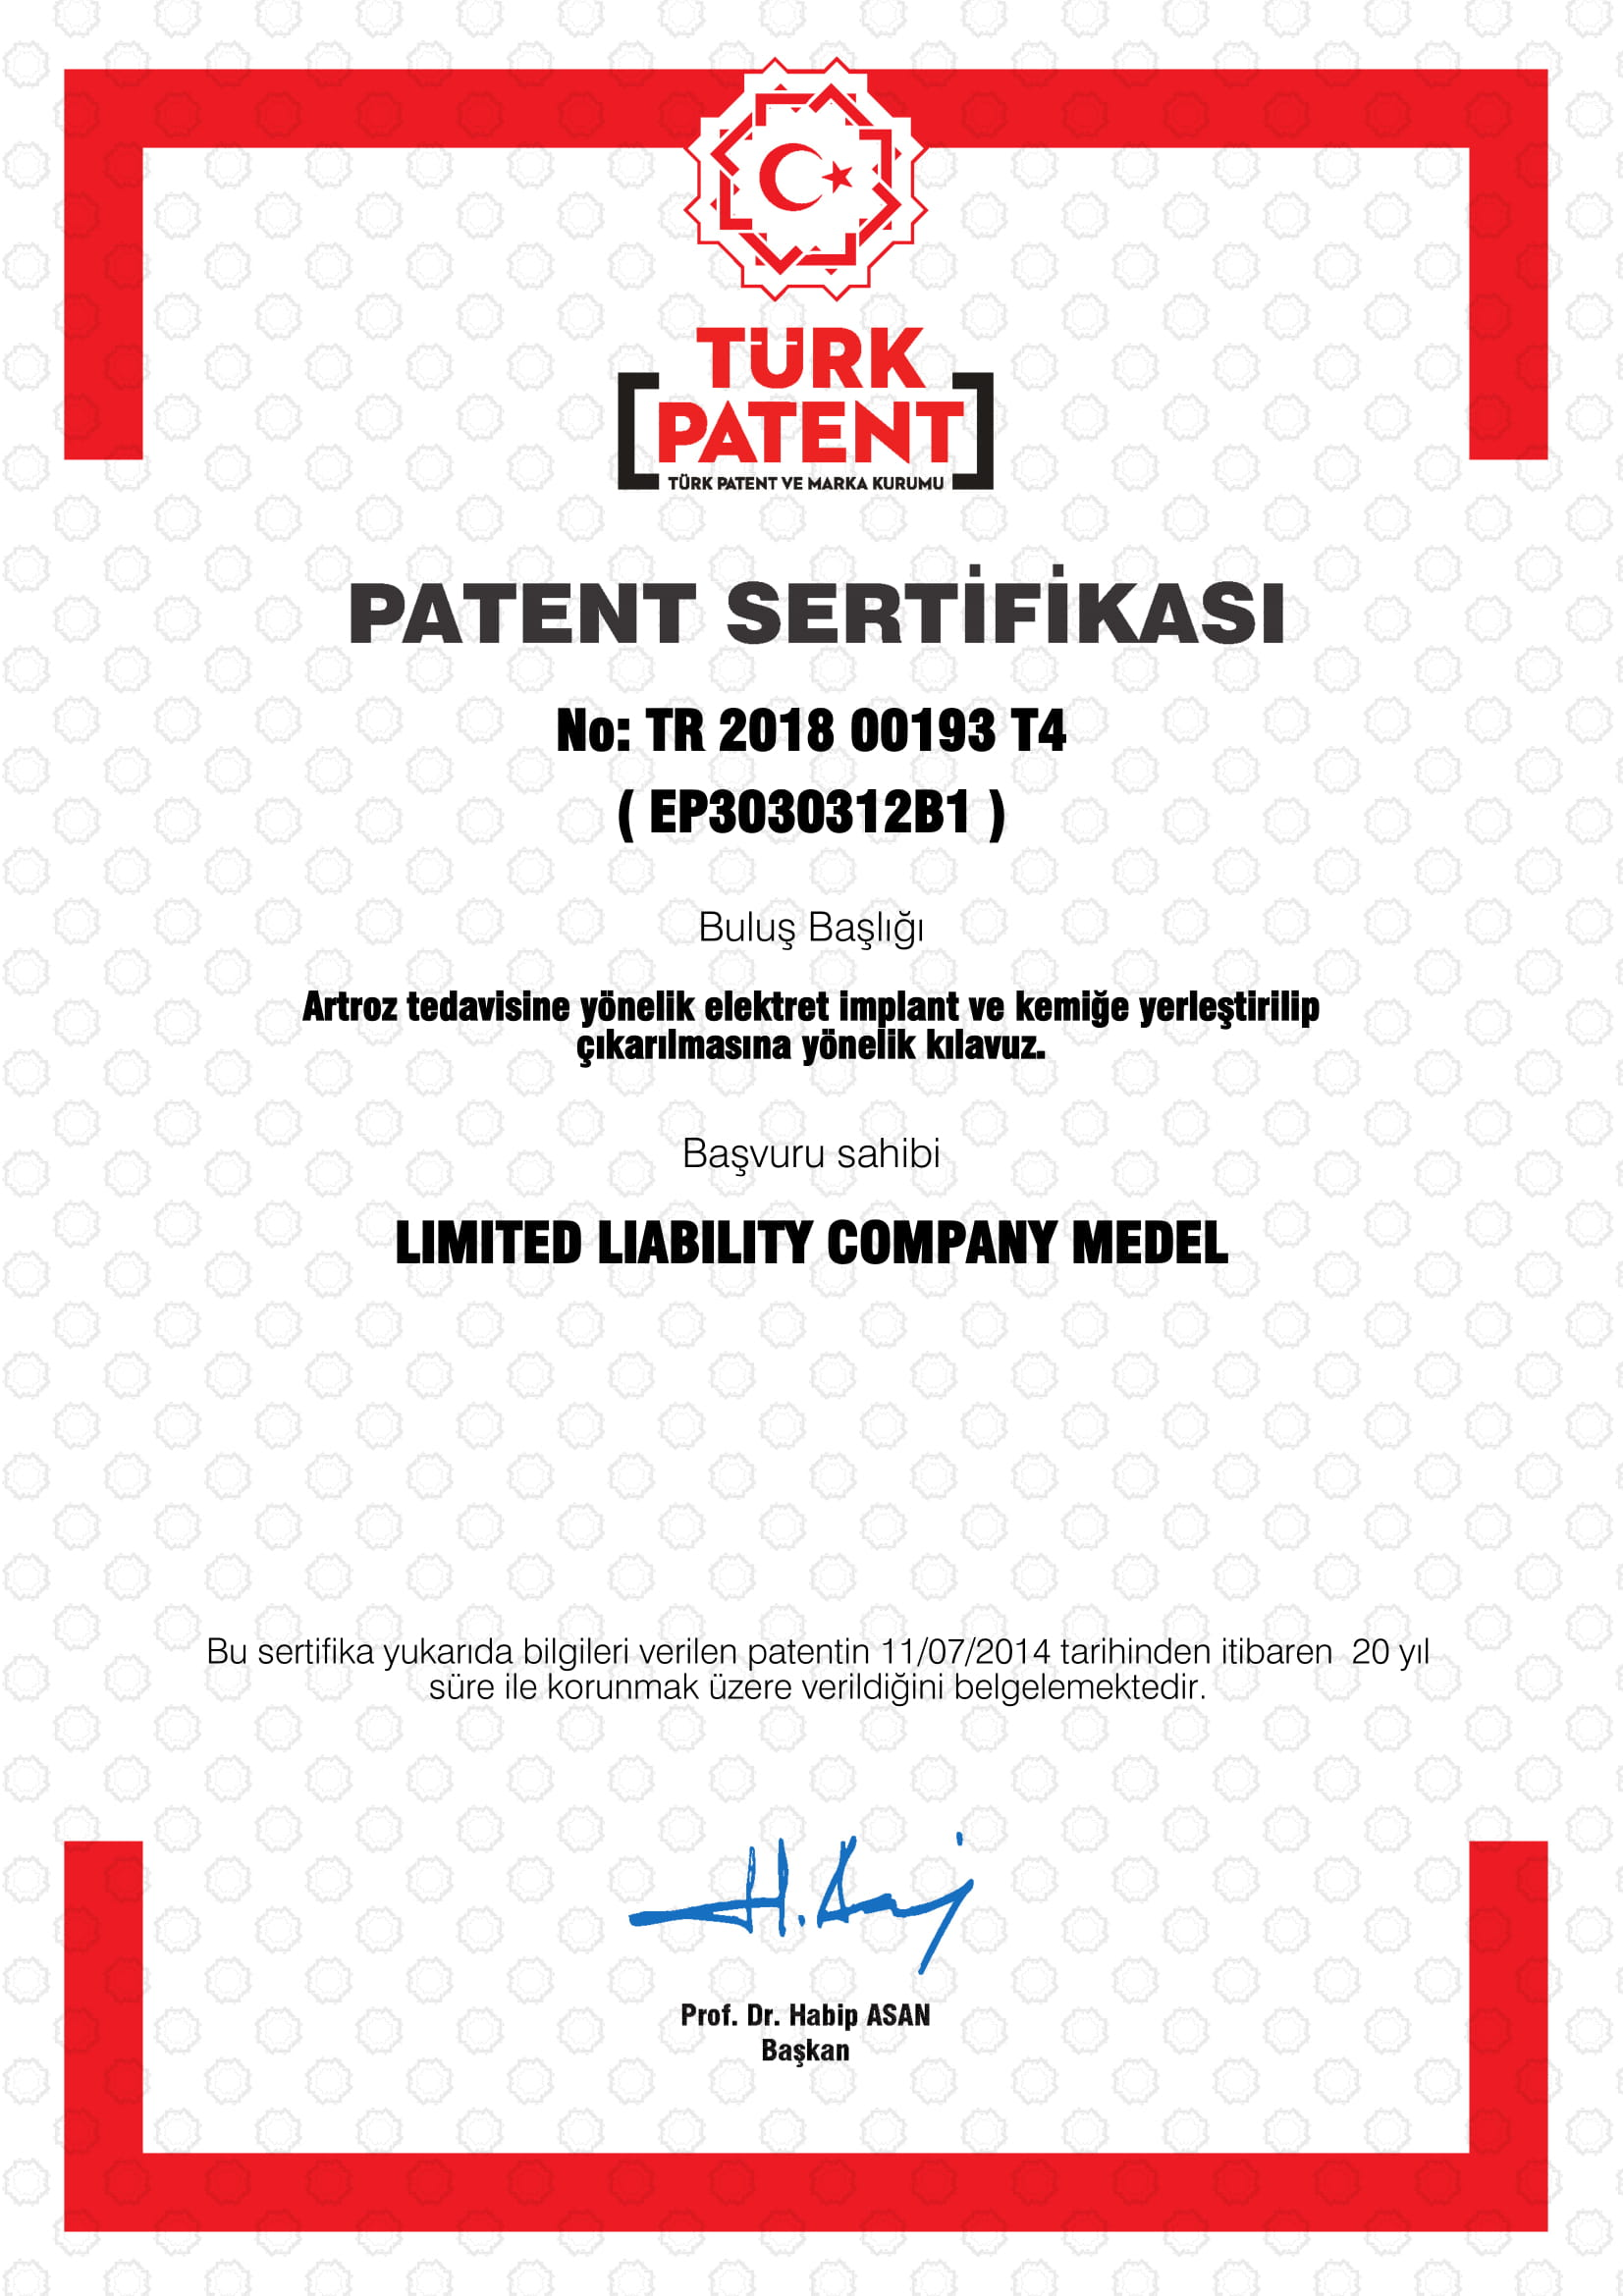 impleso-turkish-patent